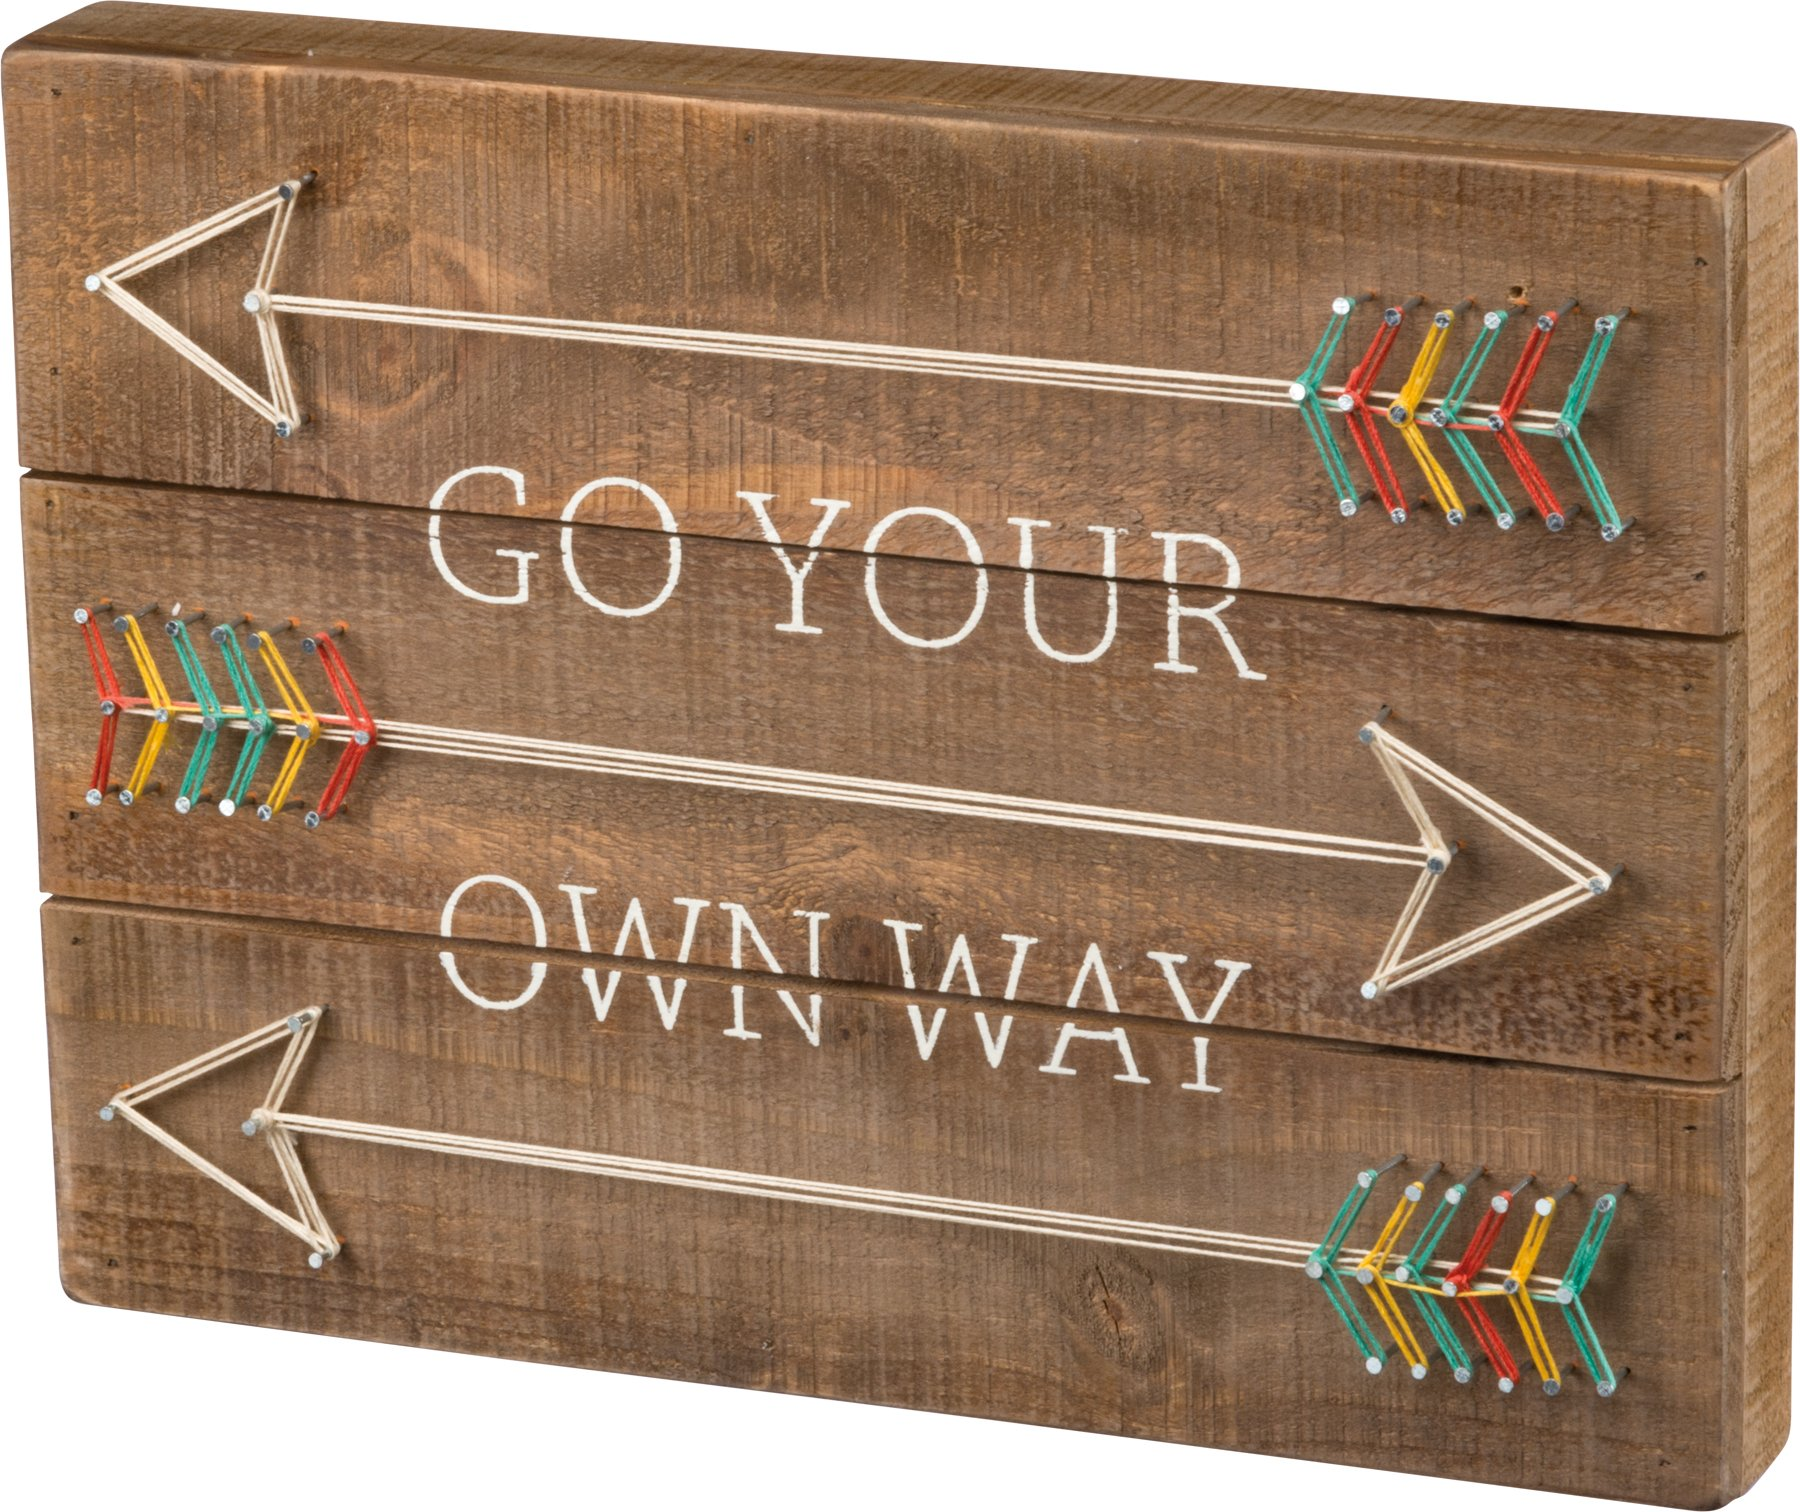 Primitives by Kathy Go Your Own Way String Art Sign with Arrows, Wood, 15'' x 11''